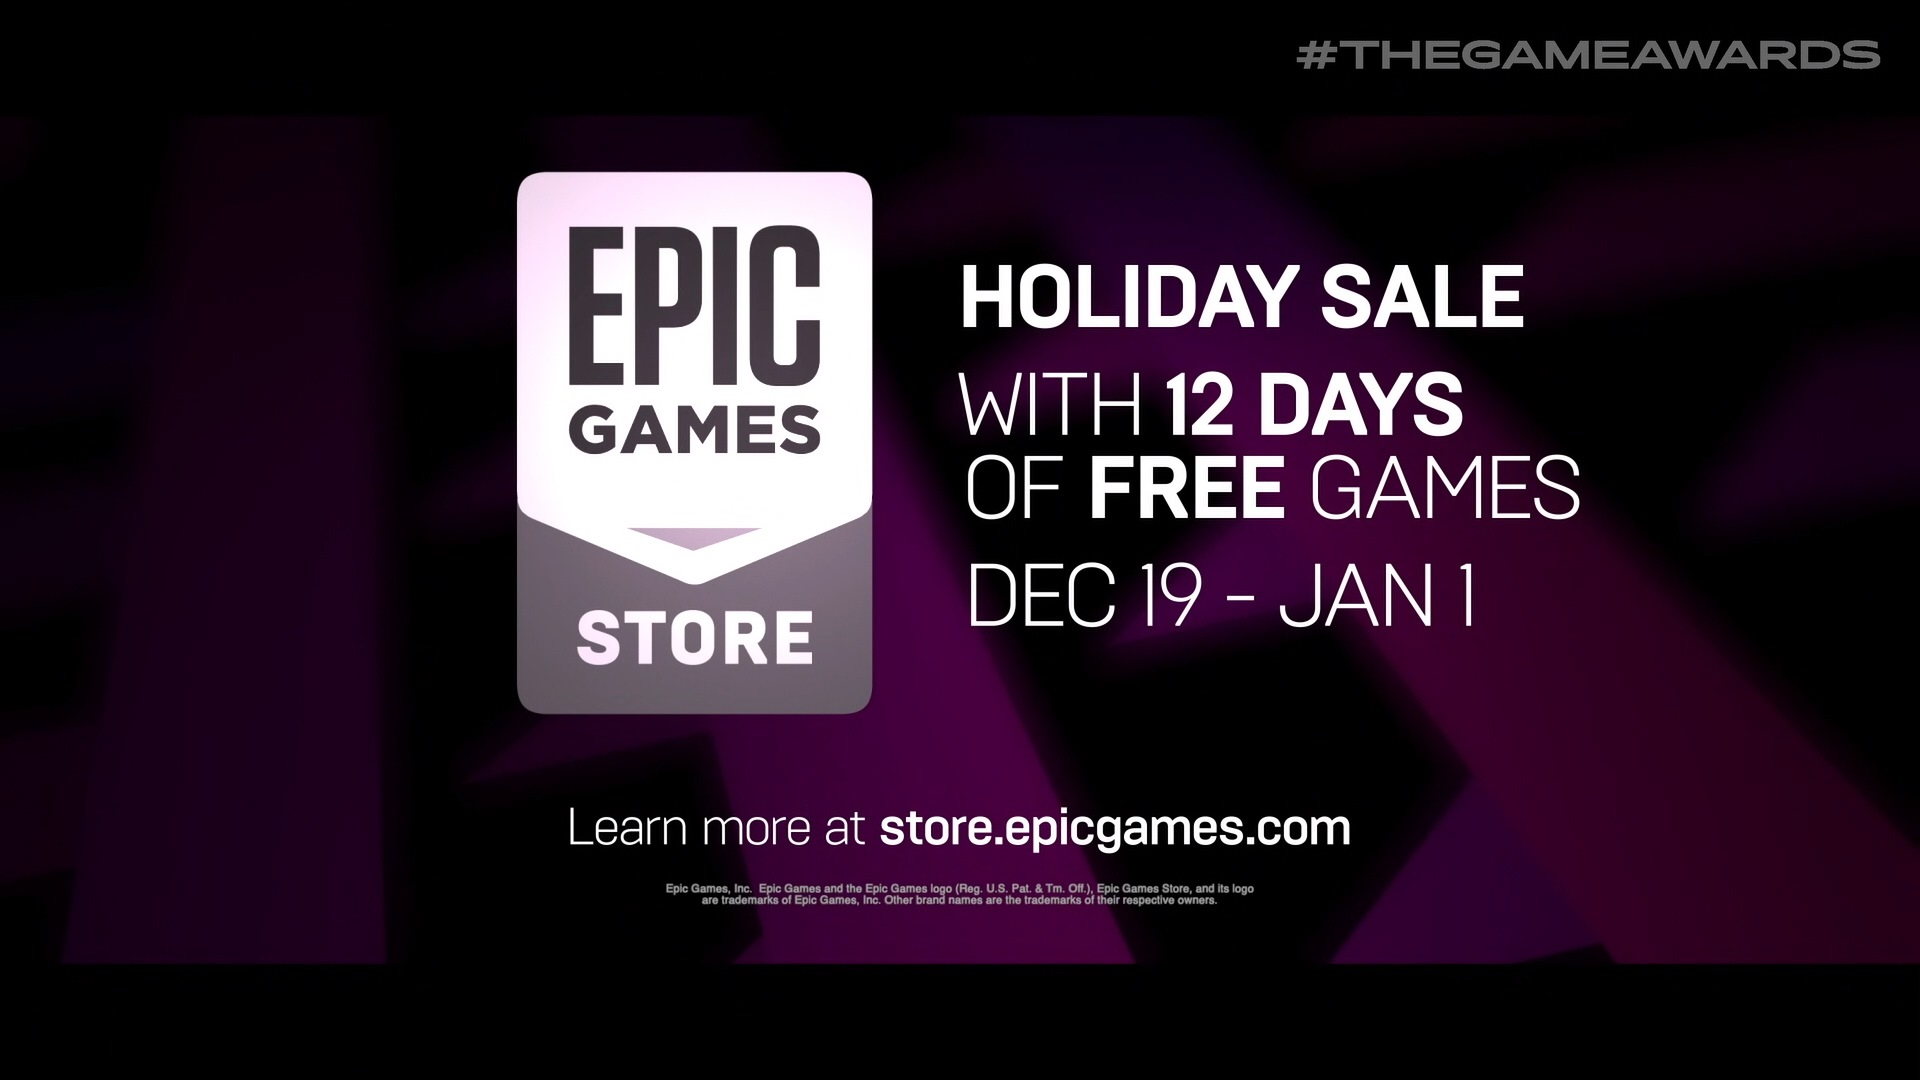 Epic Games Store to give away 12 free